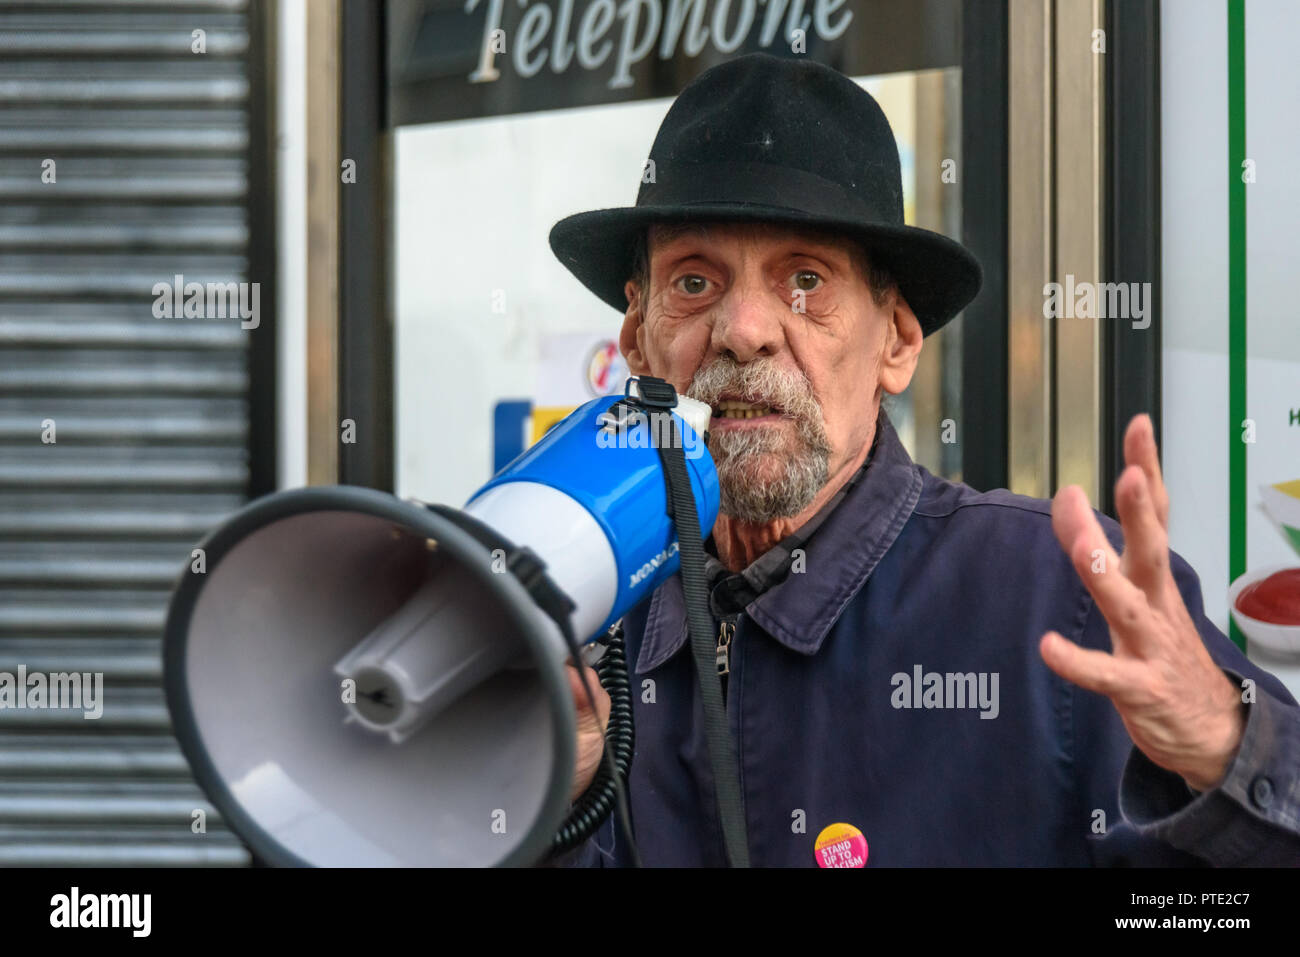 London, UK. October 9th 2018. A man speaks at the rally outside the New Atlas Cafe Restaurant where a young black man was attacked by police who used obviously unnecessary force when arresting him on suspicion of having been involved in a knife attack. He was assaulted by six officers, and was viciously kicked while officers struggled to handcuff him, andwhen he was well under control and held on the ground he was sprayed in the face with CS gas. Credit: Peter Marshall/Alamy Live News - Stock Image